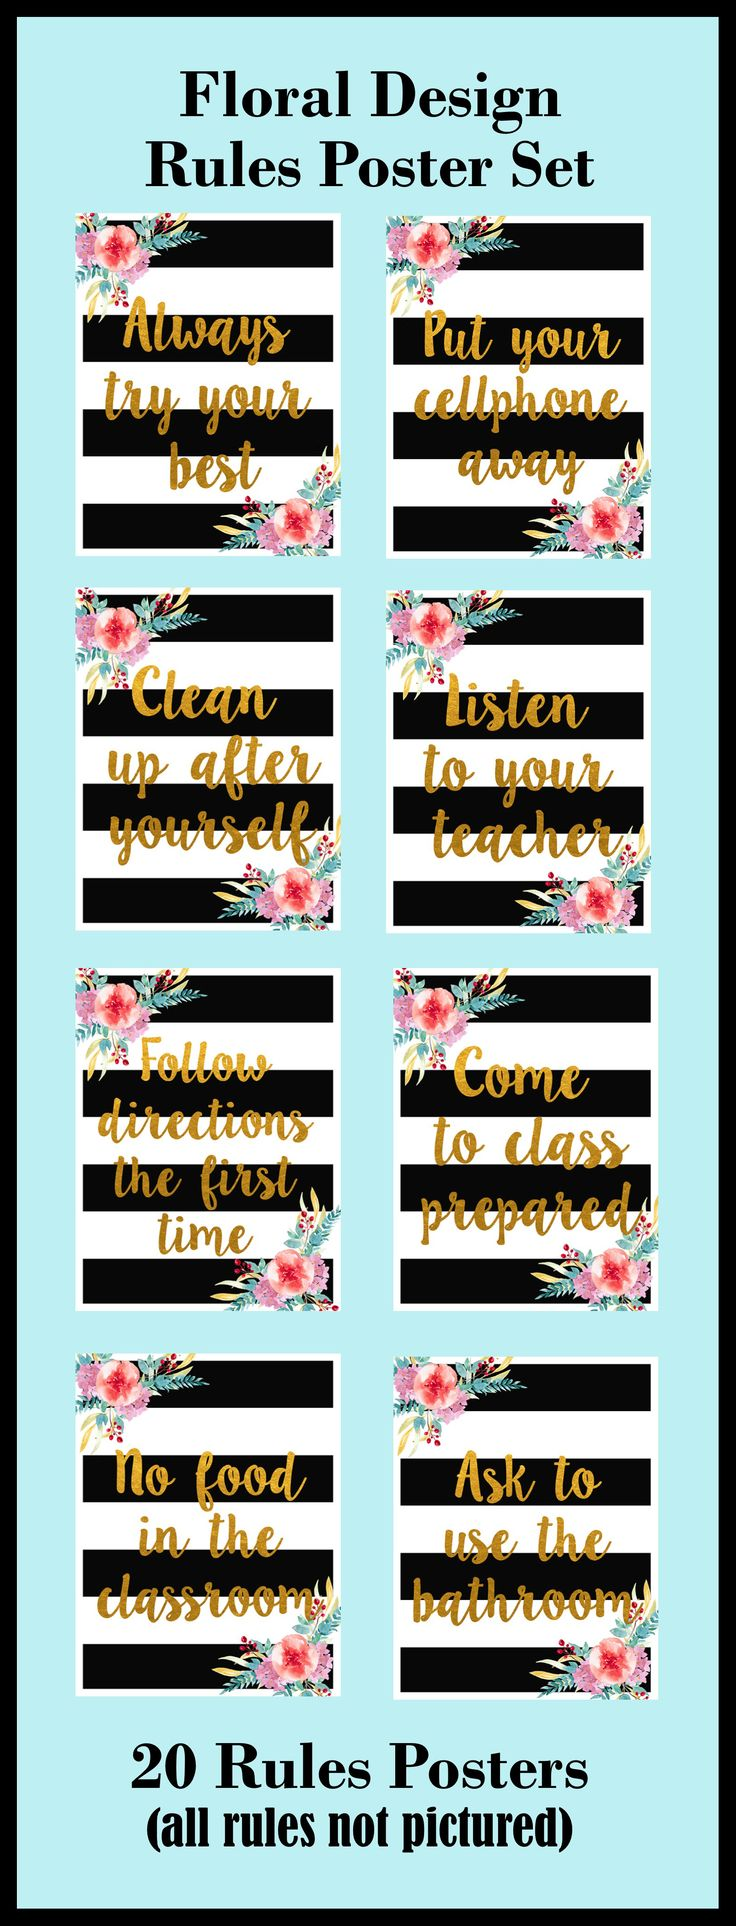 Floral Black Stripe Gold Cursive Poster Set, 20 posters in high resolution JPEG, 8.5x11 inches. Great for the general classroom or for the specials class (art, music, drama, physical education). This poster set is designed to be used in an upper elementary, middle school, or high school setting. 20 posters are included in this set to allow you to choose the rules that work best in your classroom.